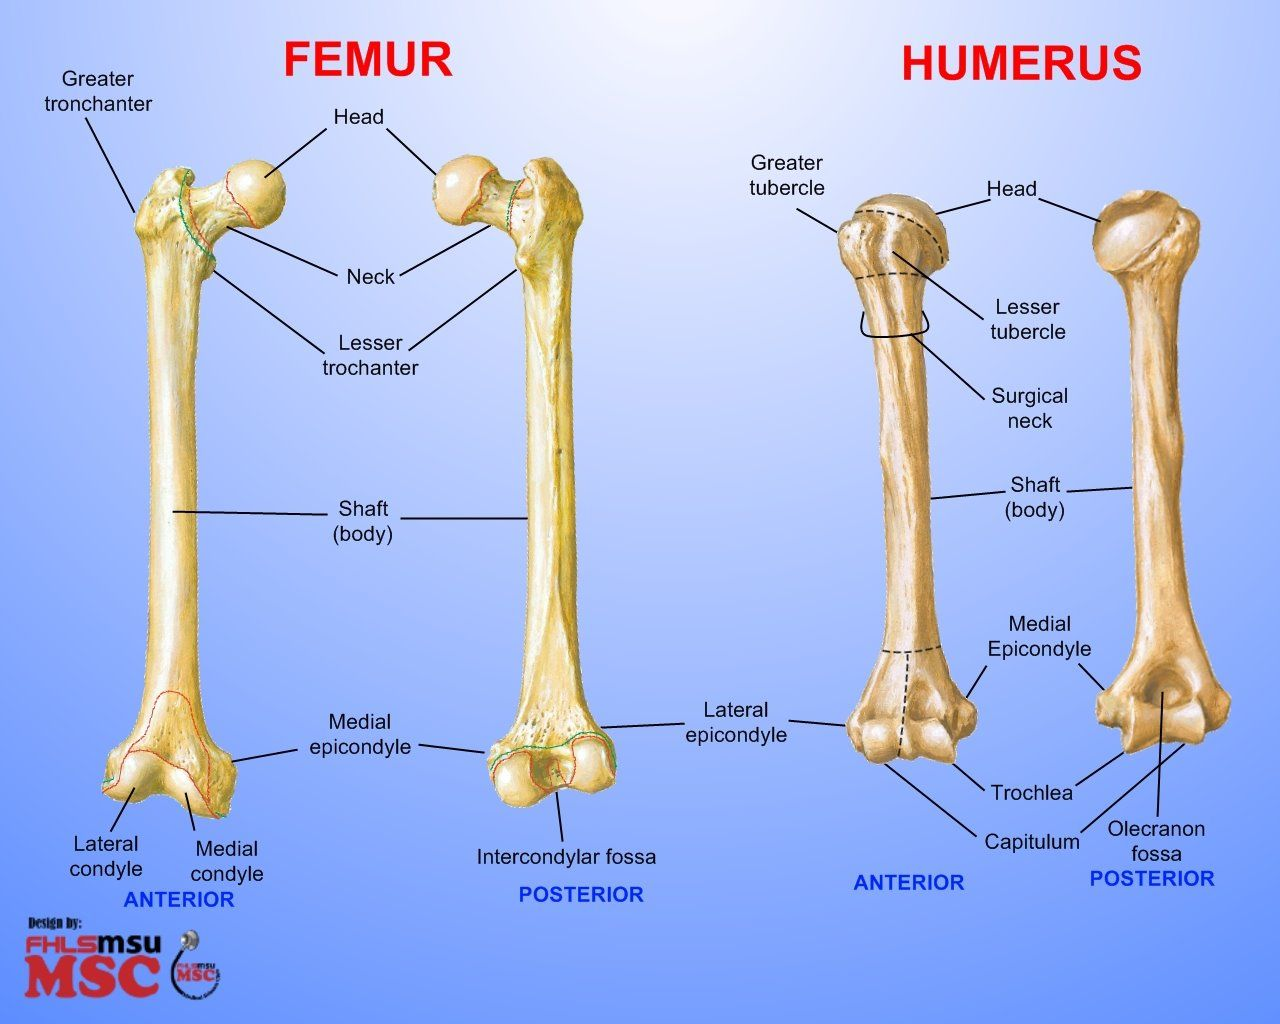 femur bone labeled | differences between femur & humerus elements